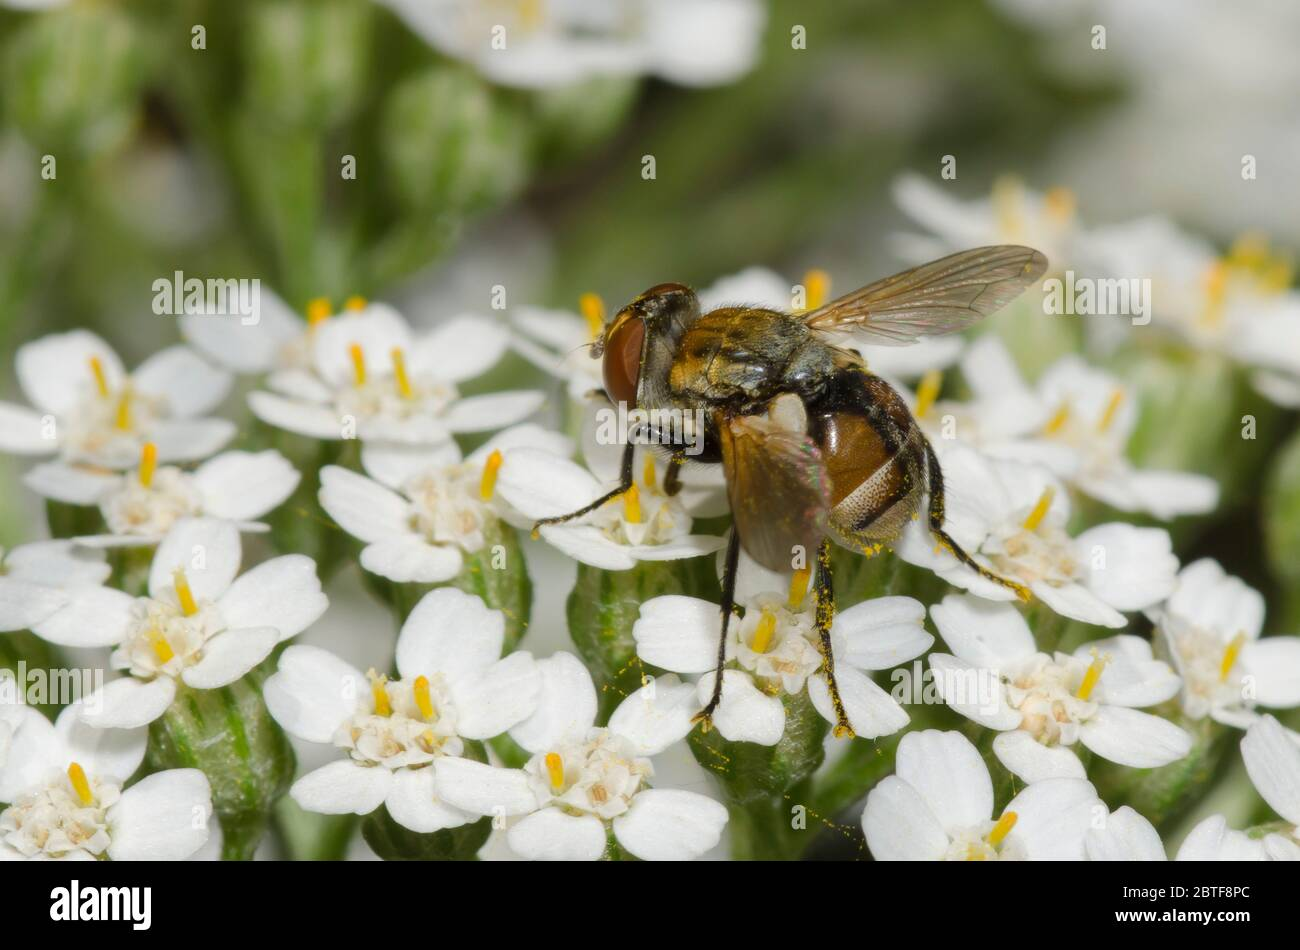 Tachinid Fly, Gymnoclytia sp., foraging on yarrow, Achillea millefolium Stock Photo